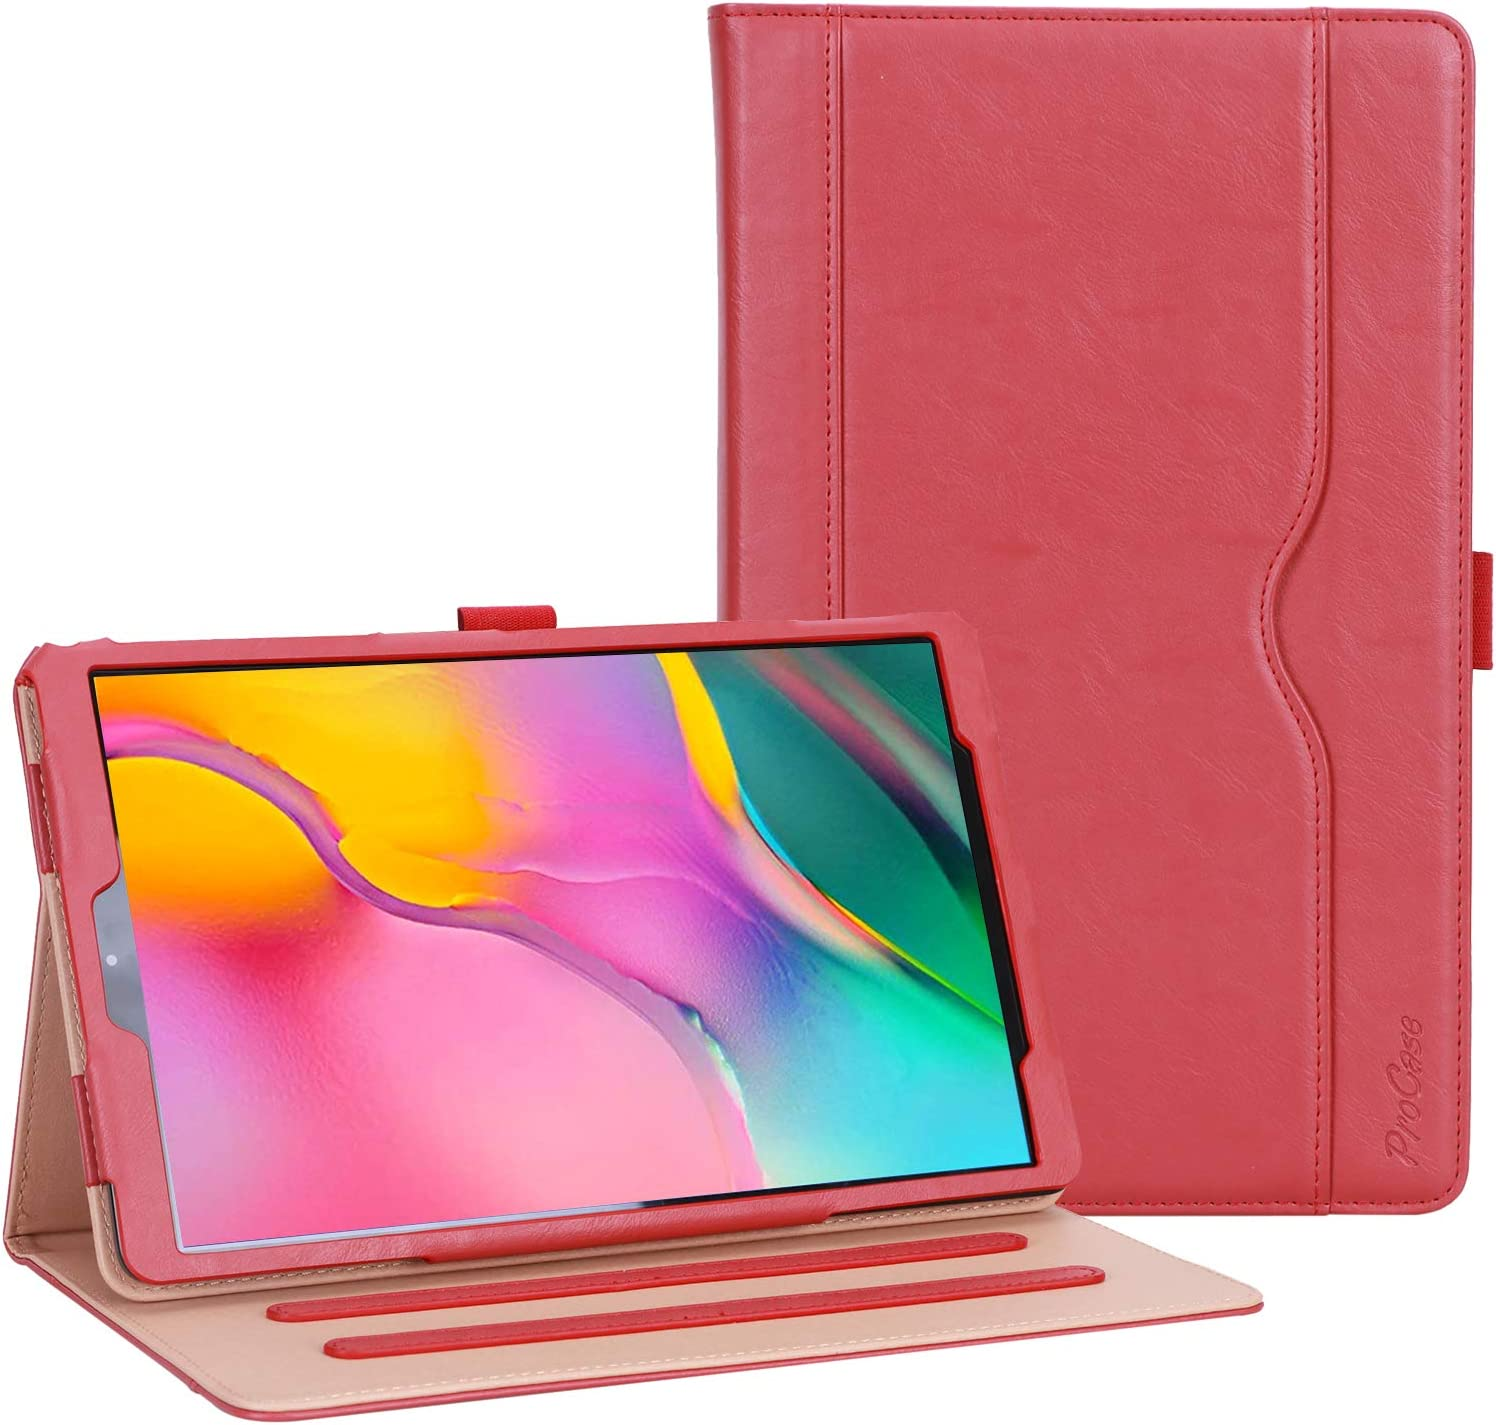 ProCase Galaxy Tab A 10.1 Case 2019 Model T510 T515 T517 - Stand Folio Case Cover for Galaxy Tab A 10.1 Inch 2019 Tablet SM-T510 SM-T515 SM-T517 -Red